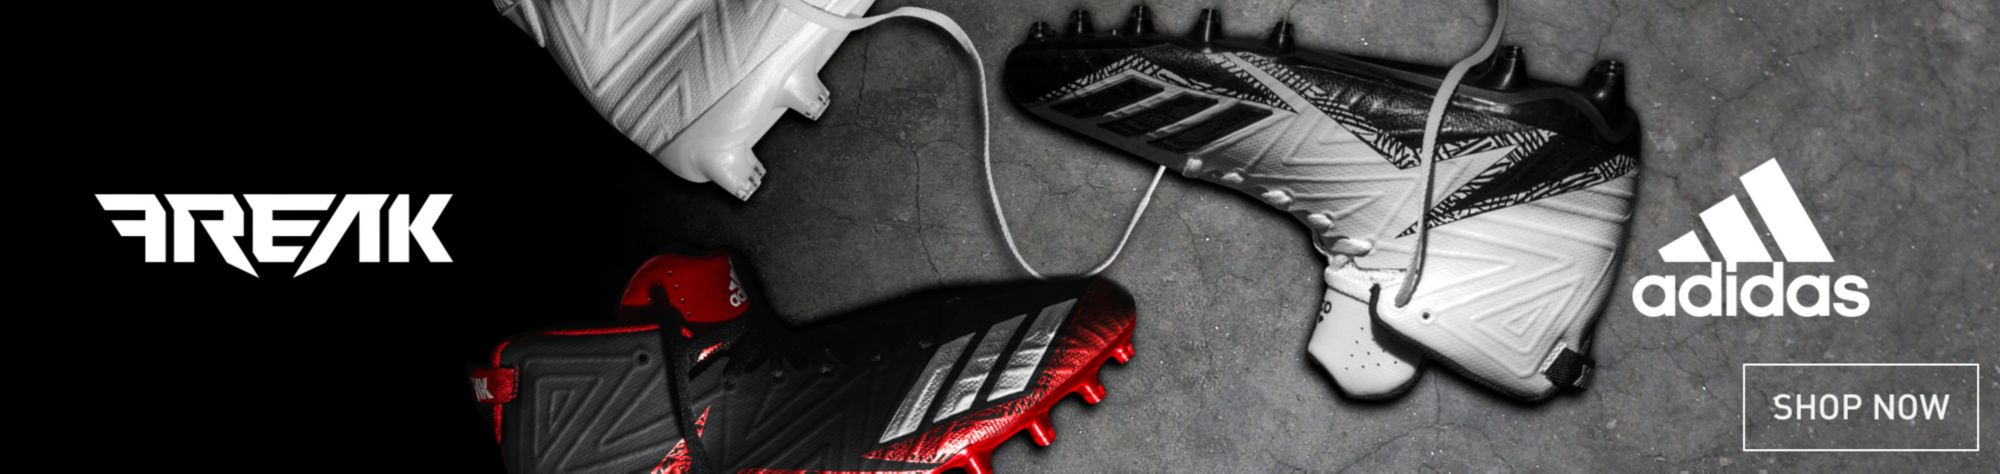 Adidas Football Cleat